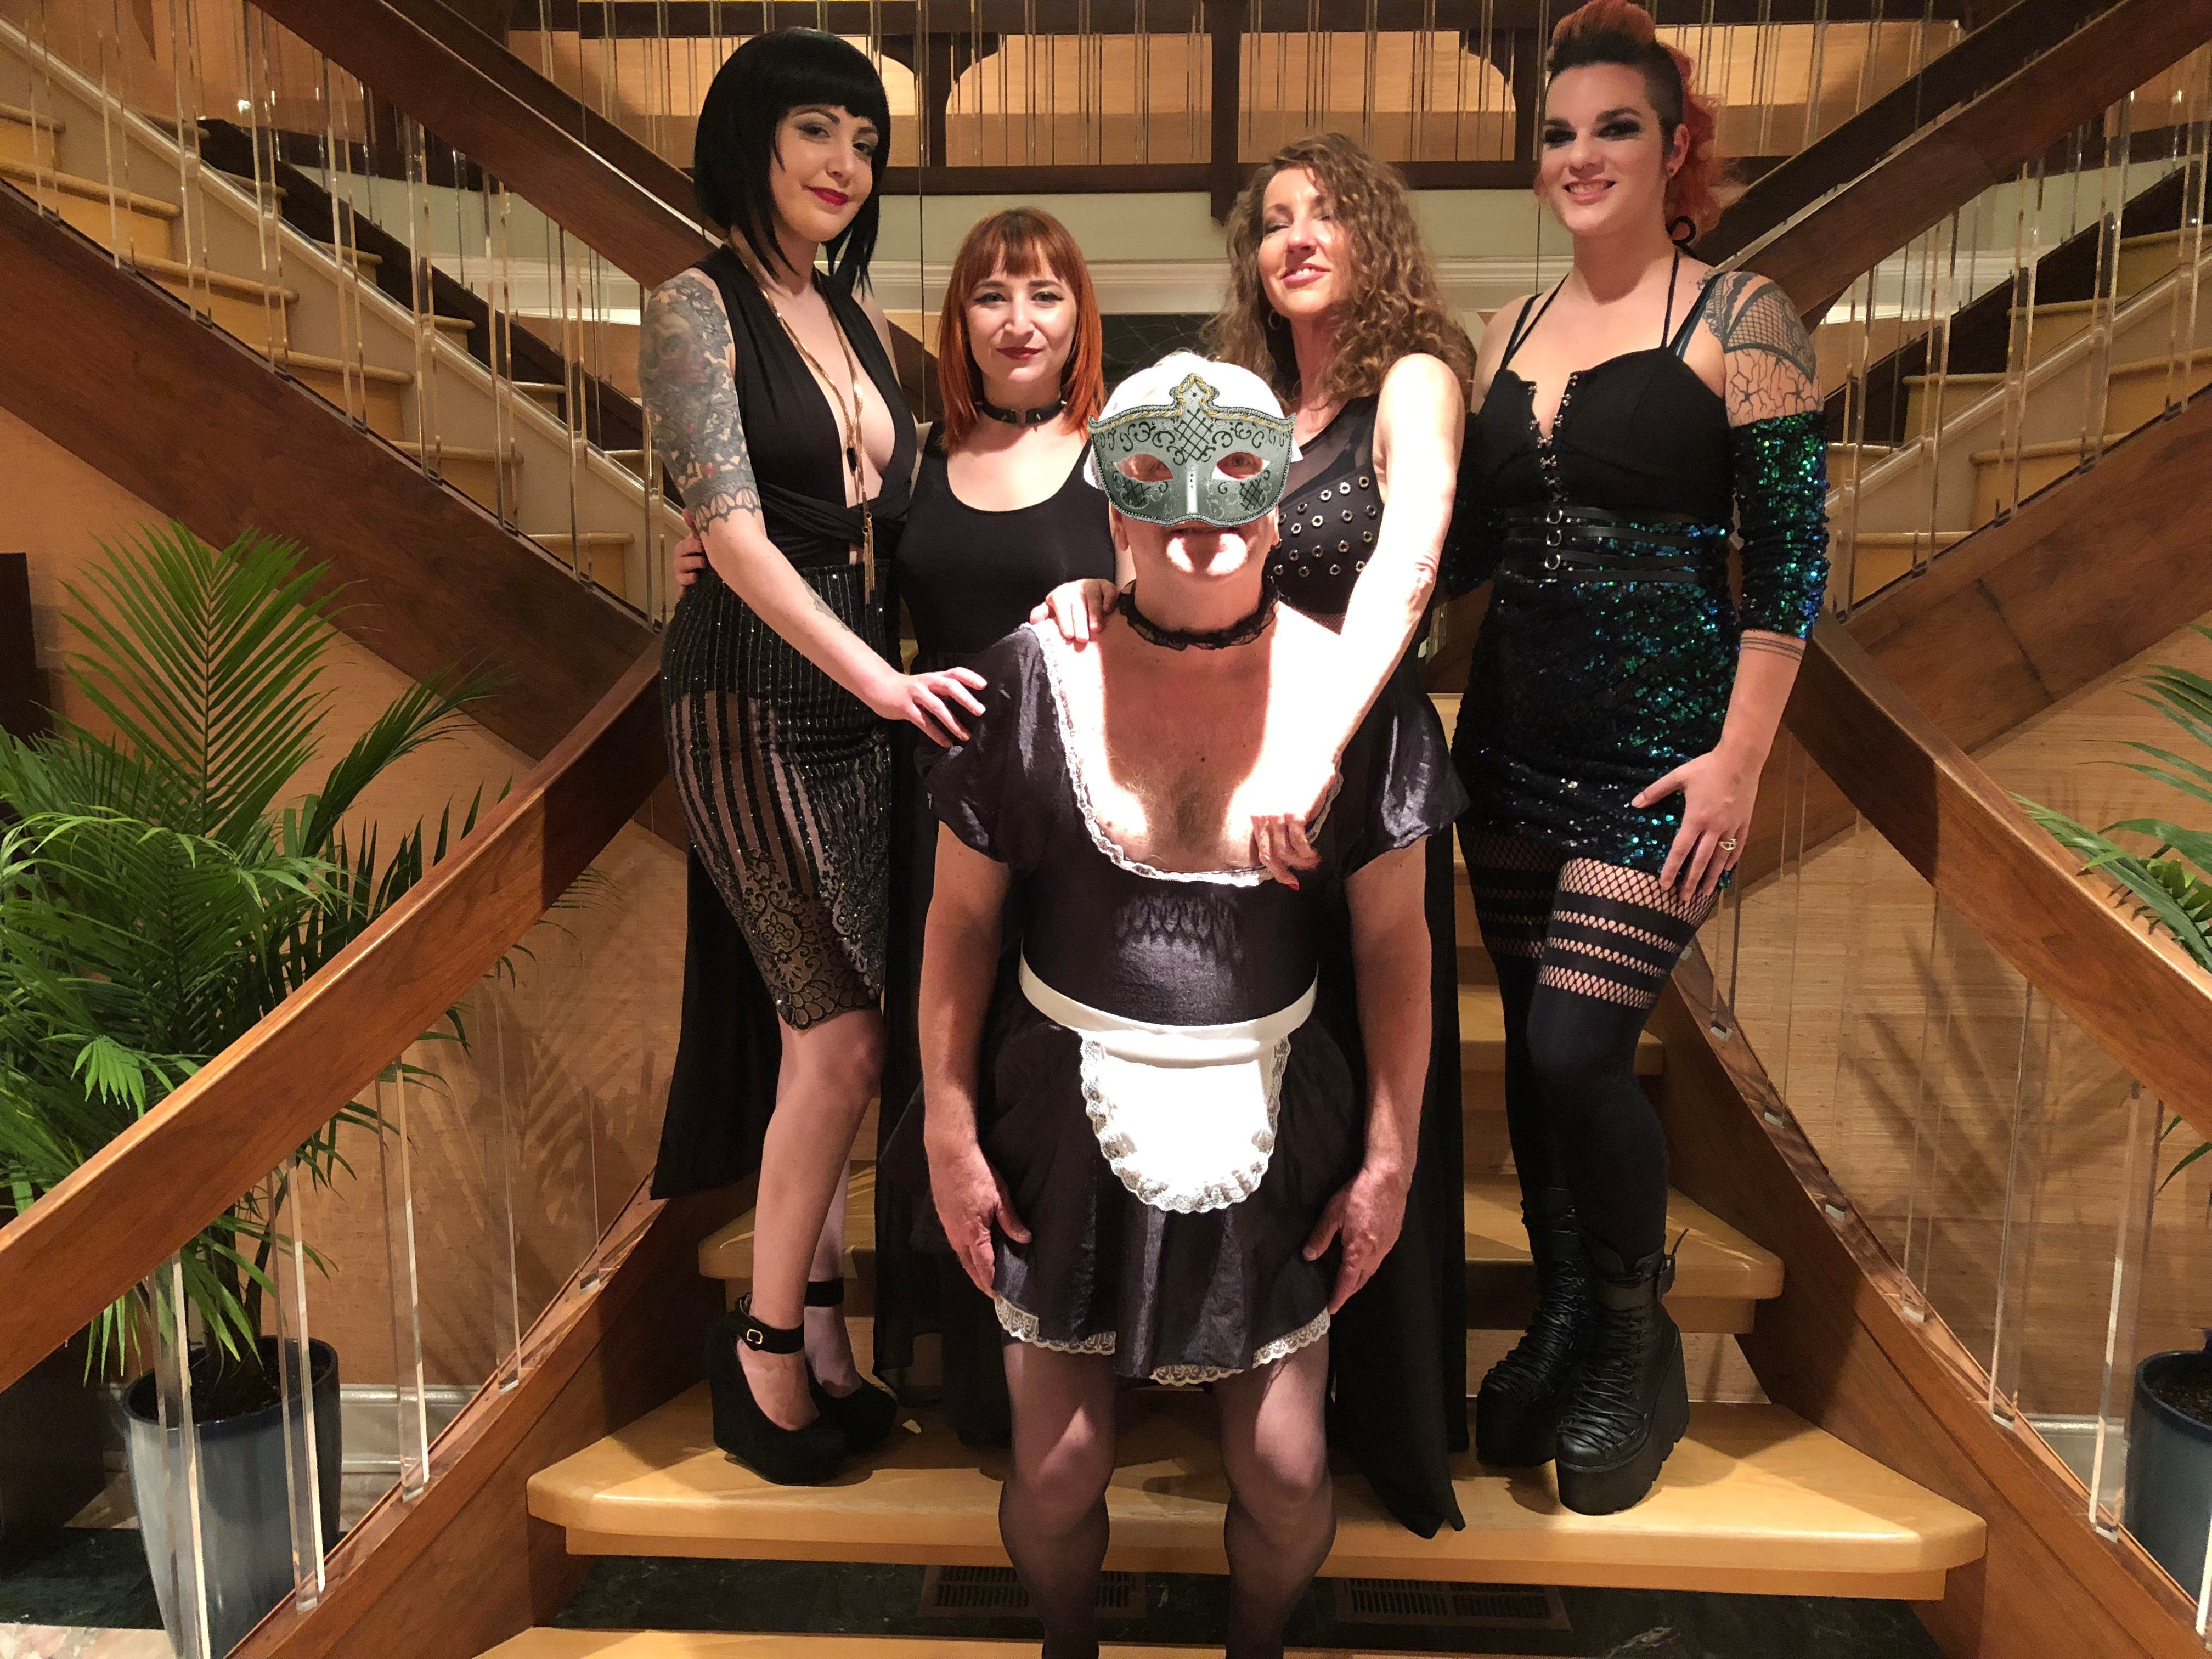 Harness femdom party cock opinion you